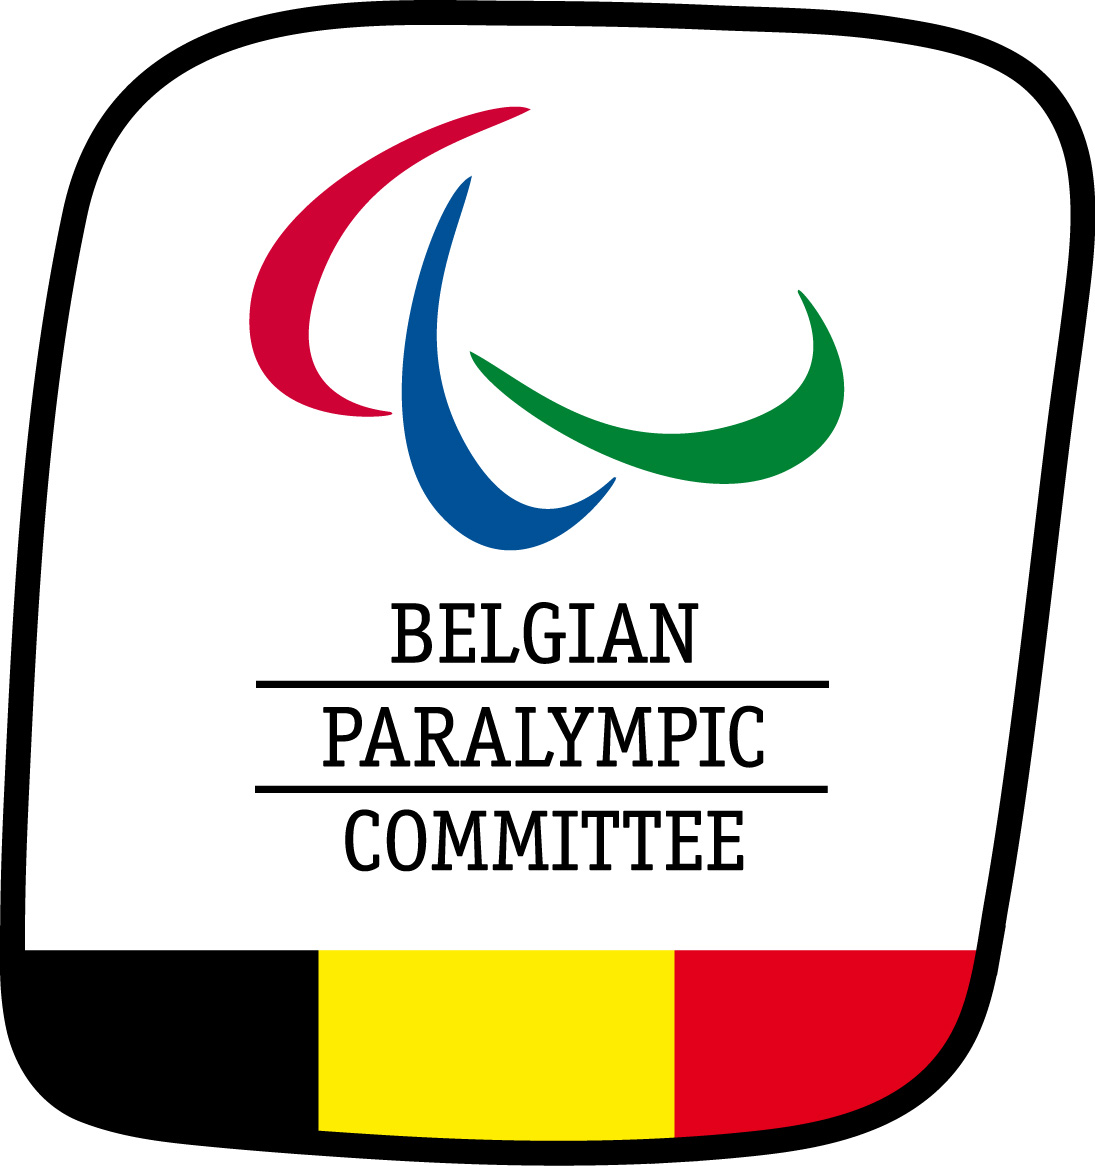 The Belgian Paralympic Committee have appointed Olek Kazimirowski as their Chef de Mission for the 2016 Paralympic Games in Rio de Janeiro ©Belgian Paralympic Committee